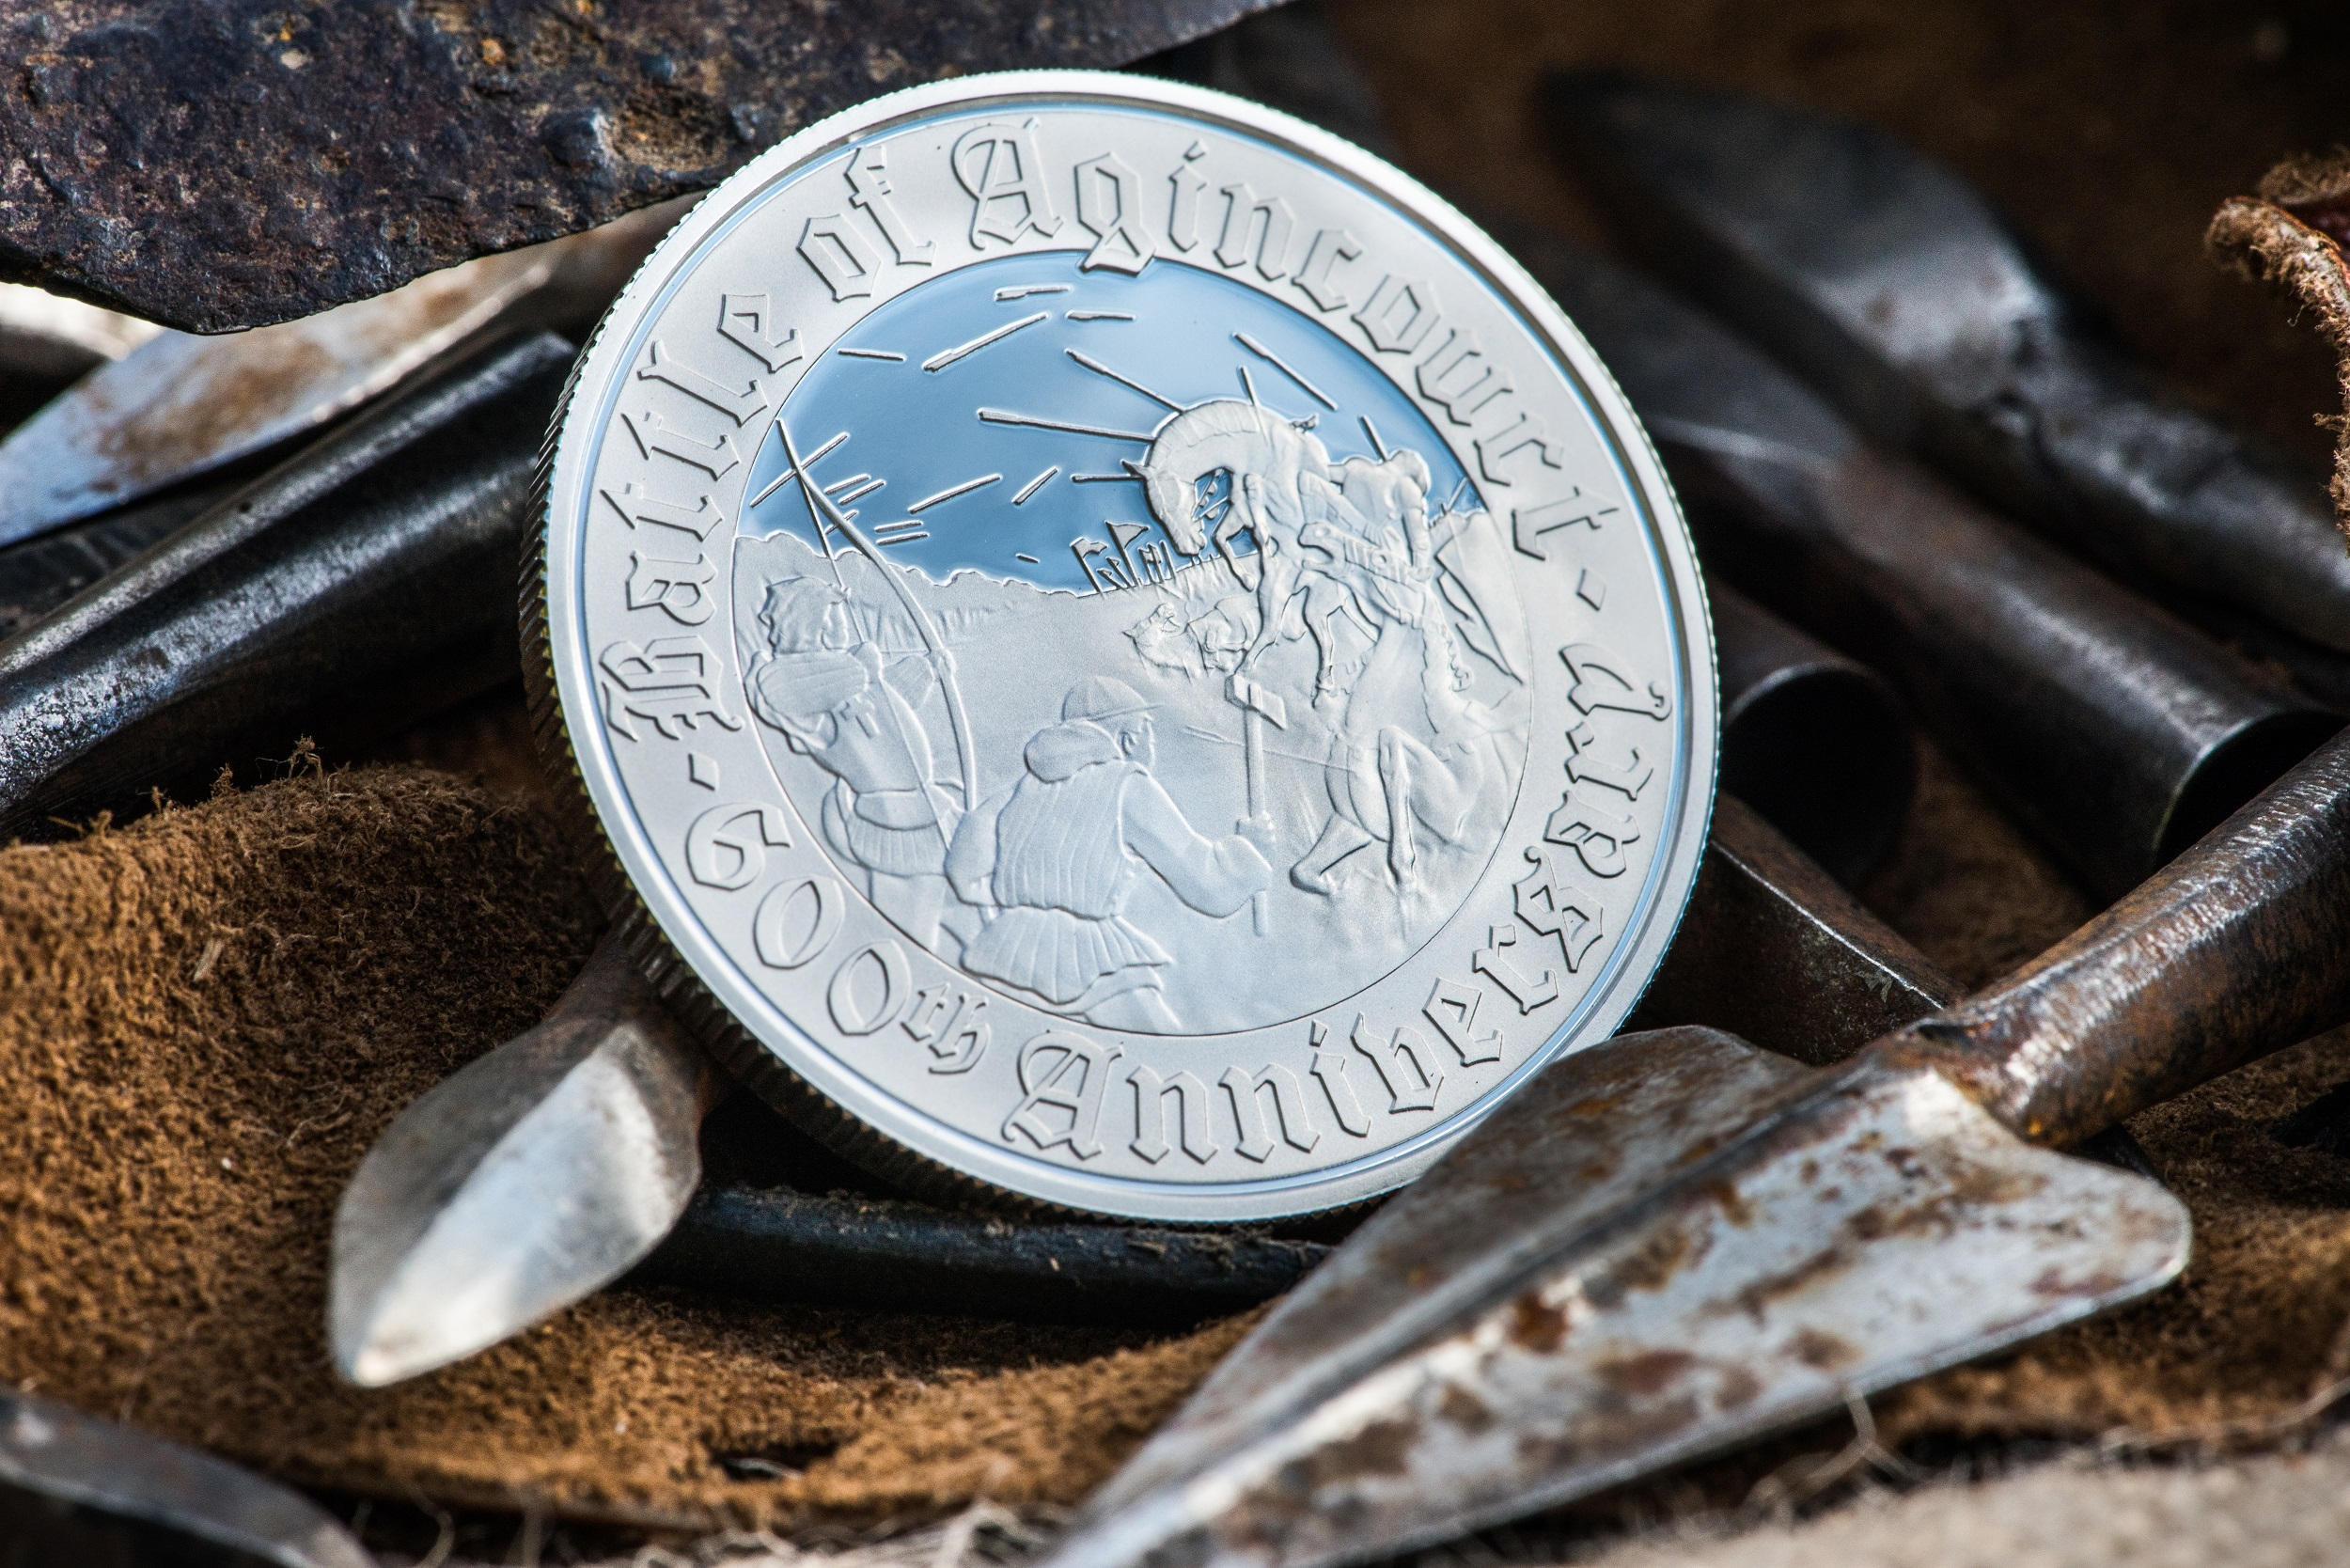 Royal Mint coin